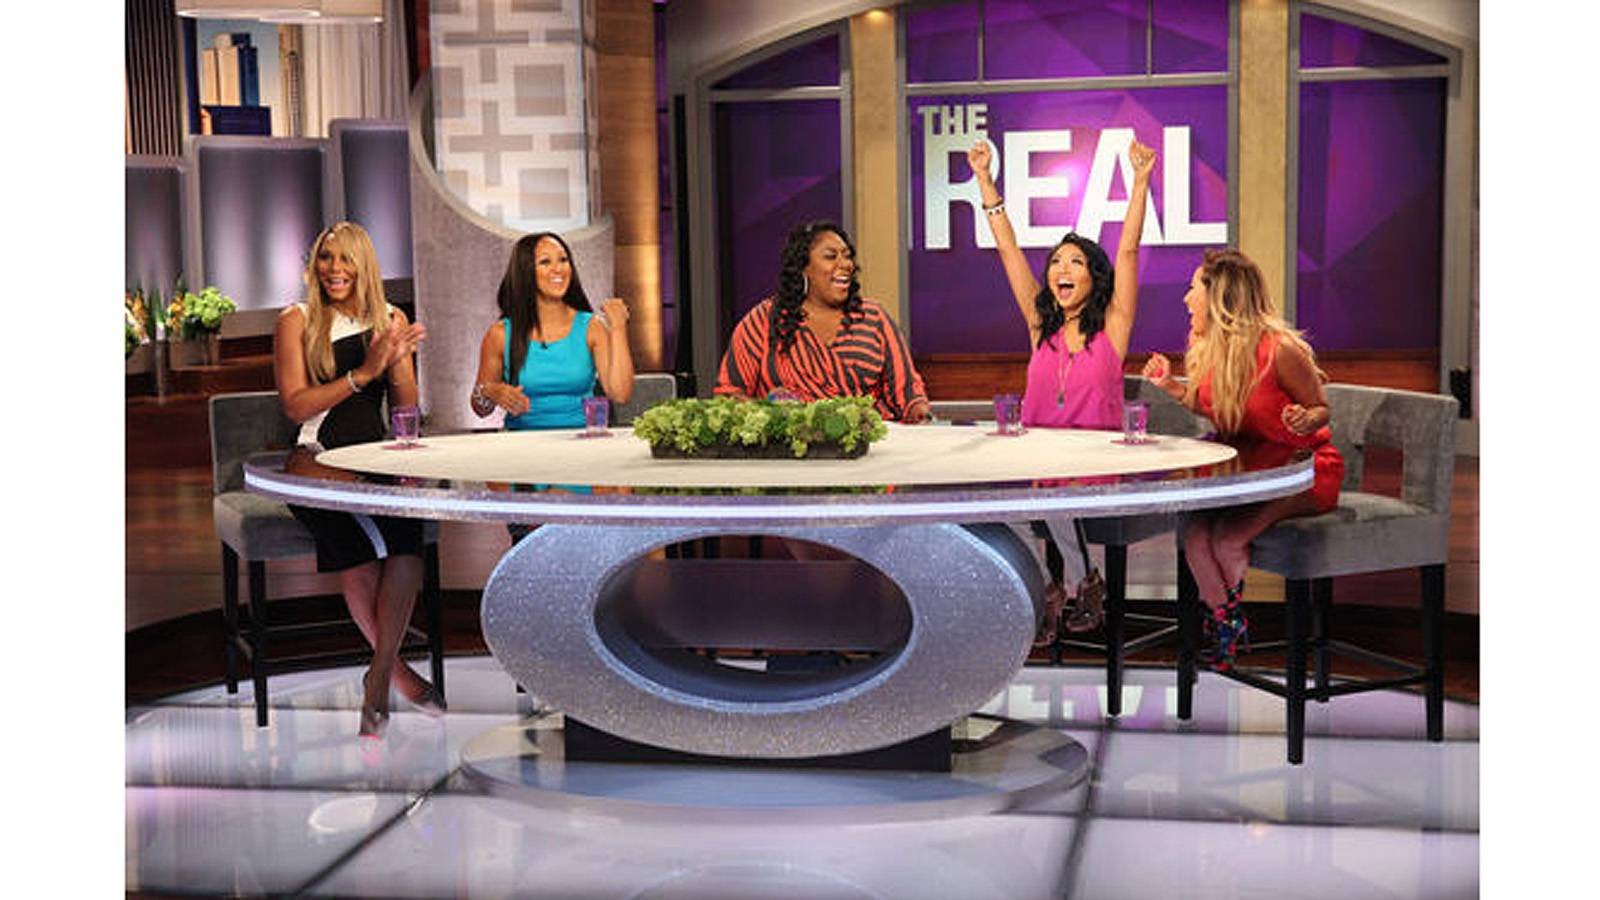 The Real - Tamar Braxton, Loni Love, Adrienne Bailon, Jeannie Mai and Tamera Mowry-Housley are the out-spoken and lovely hosts of The Real. The show allows women to discuss topics spanning from personal experiences to the news of the day to beauty, fashion and relationships. (Photo: Courtesy of Fox)